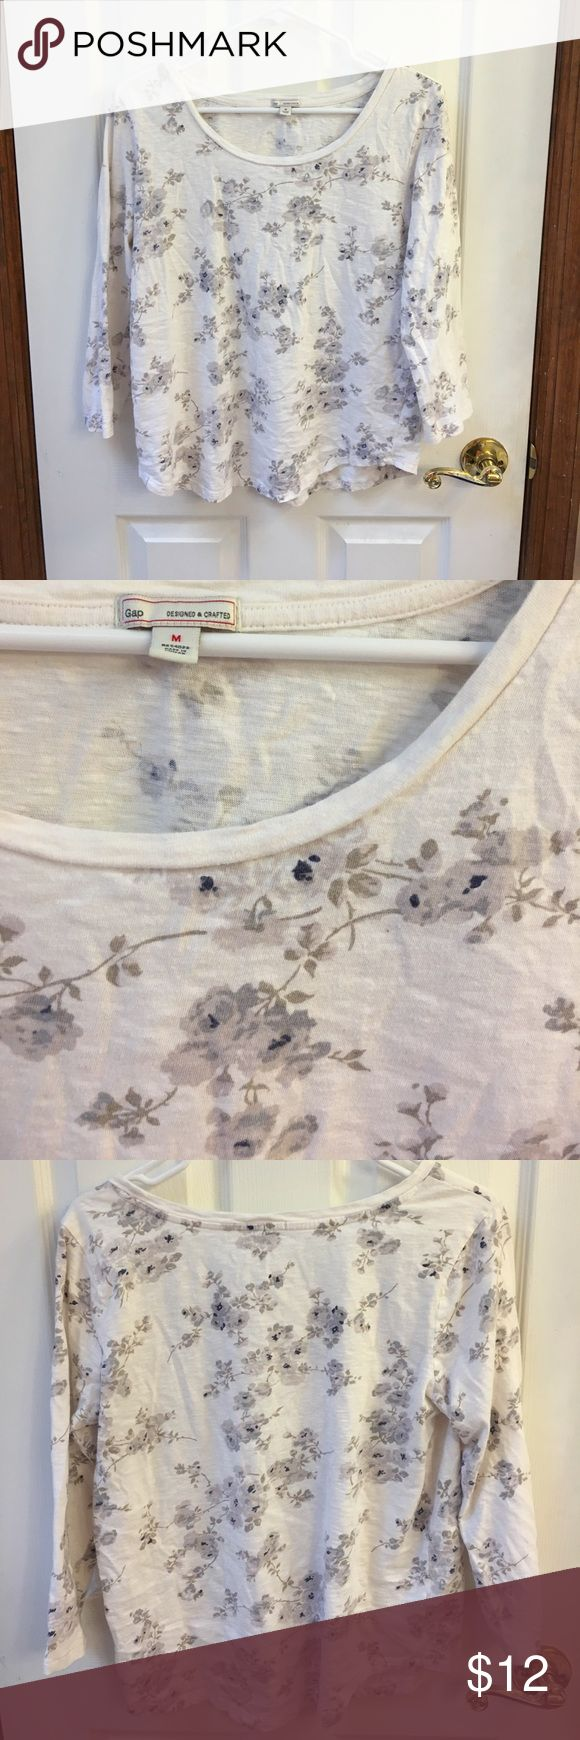 Gap cream floral tee. Gap cream tee with grey floral print. Boatneckline. 3/4 sleeves. Worn/washed and in good condition. GAP Tops Tees - Long Sleeve